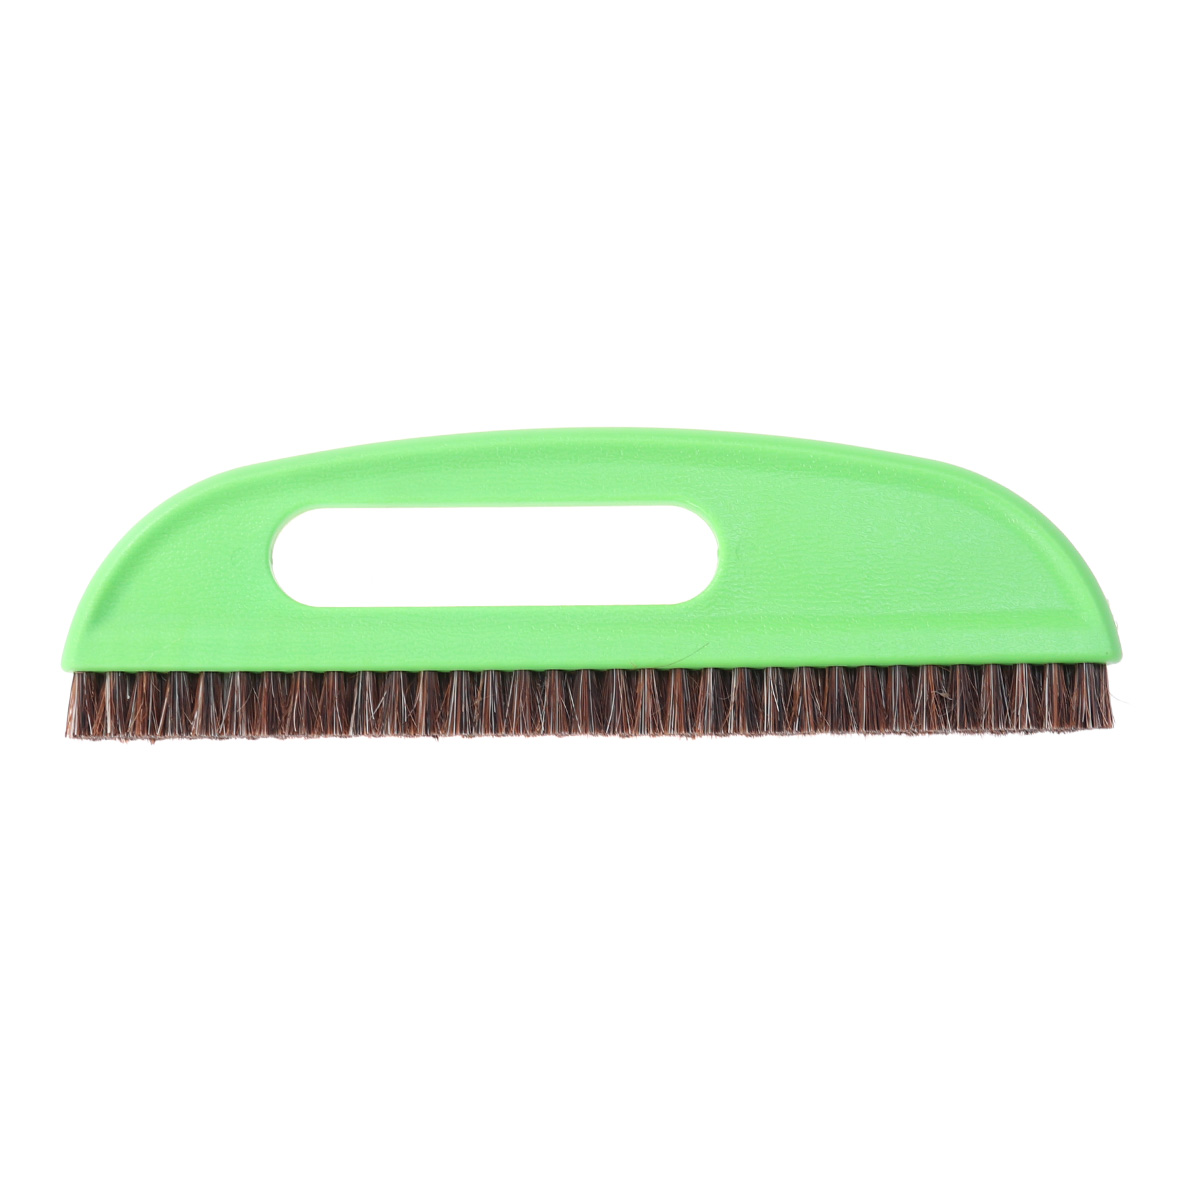 Worker Horse Hair Brush Construction Tools Wallpaper Brush For Wallpaper Horse Hair Brush Wallpaper Brush Construction Tools